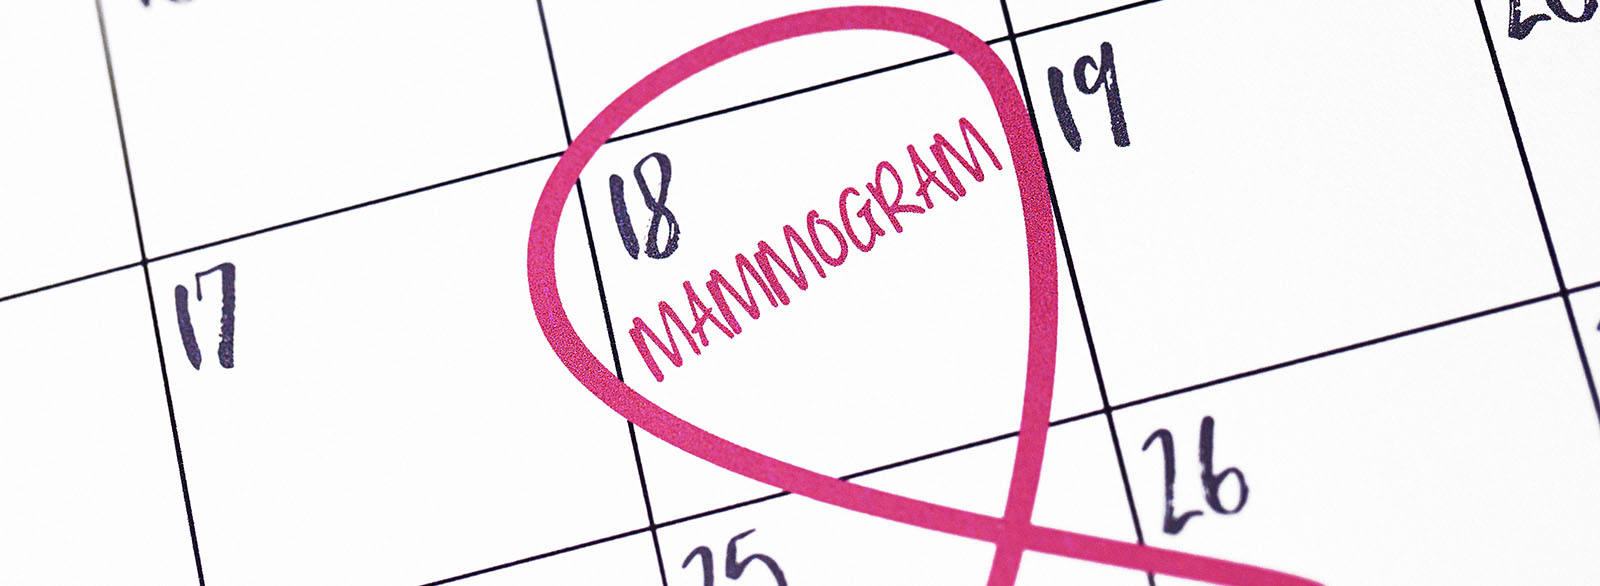 Calendar date with the word mammogram circled.